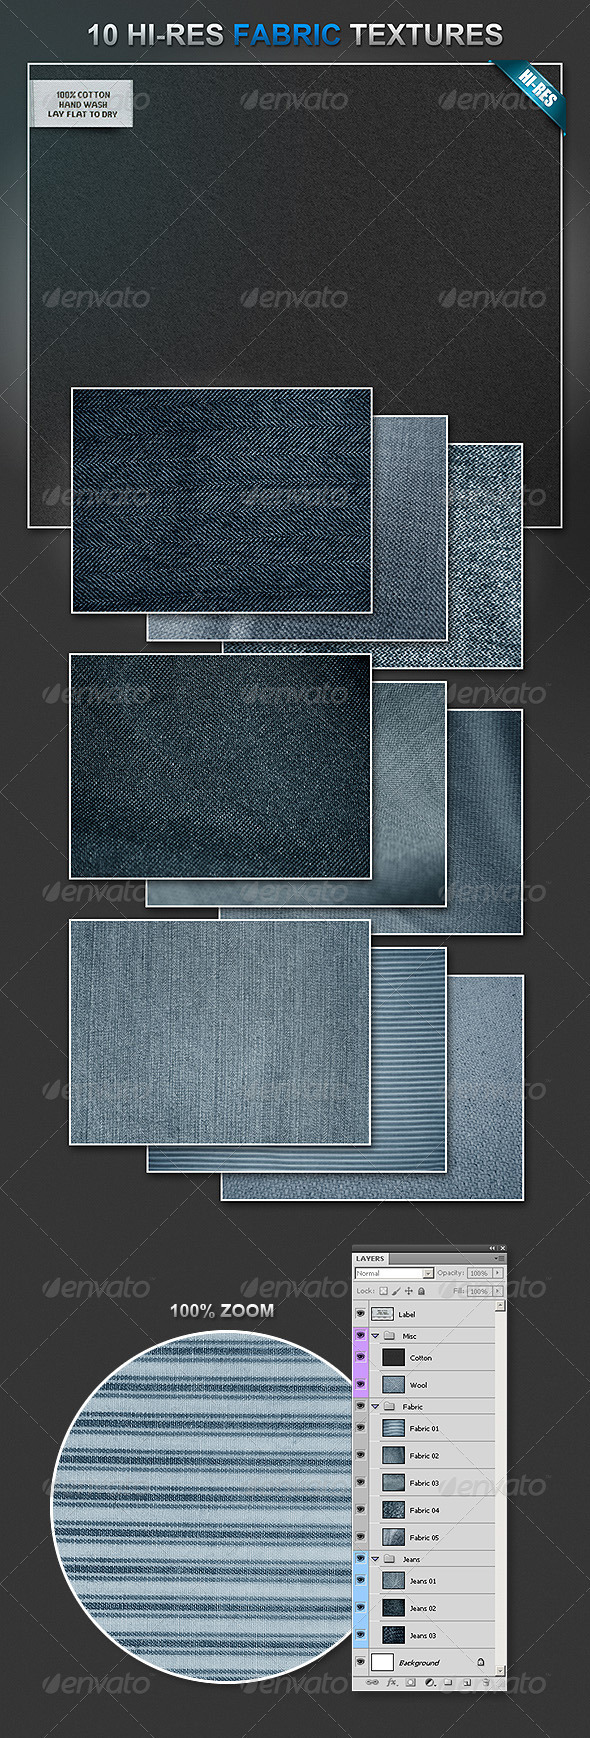 10 Fabric Materials - Backgrounds Graphics